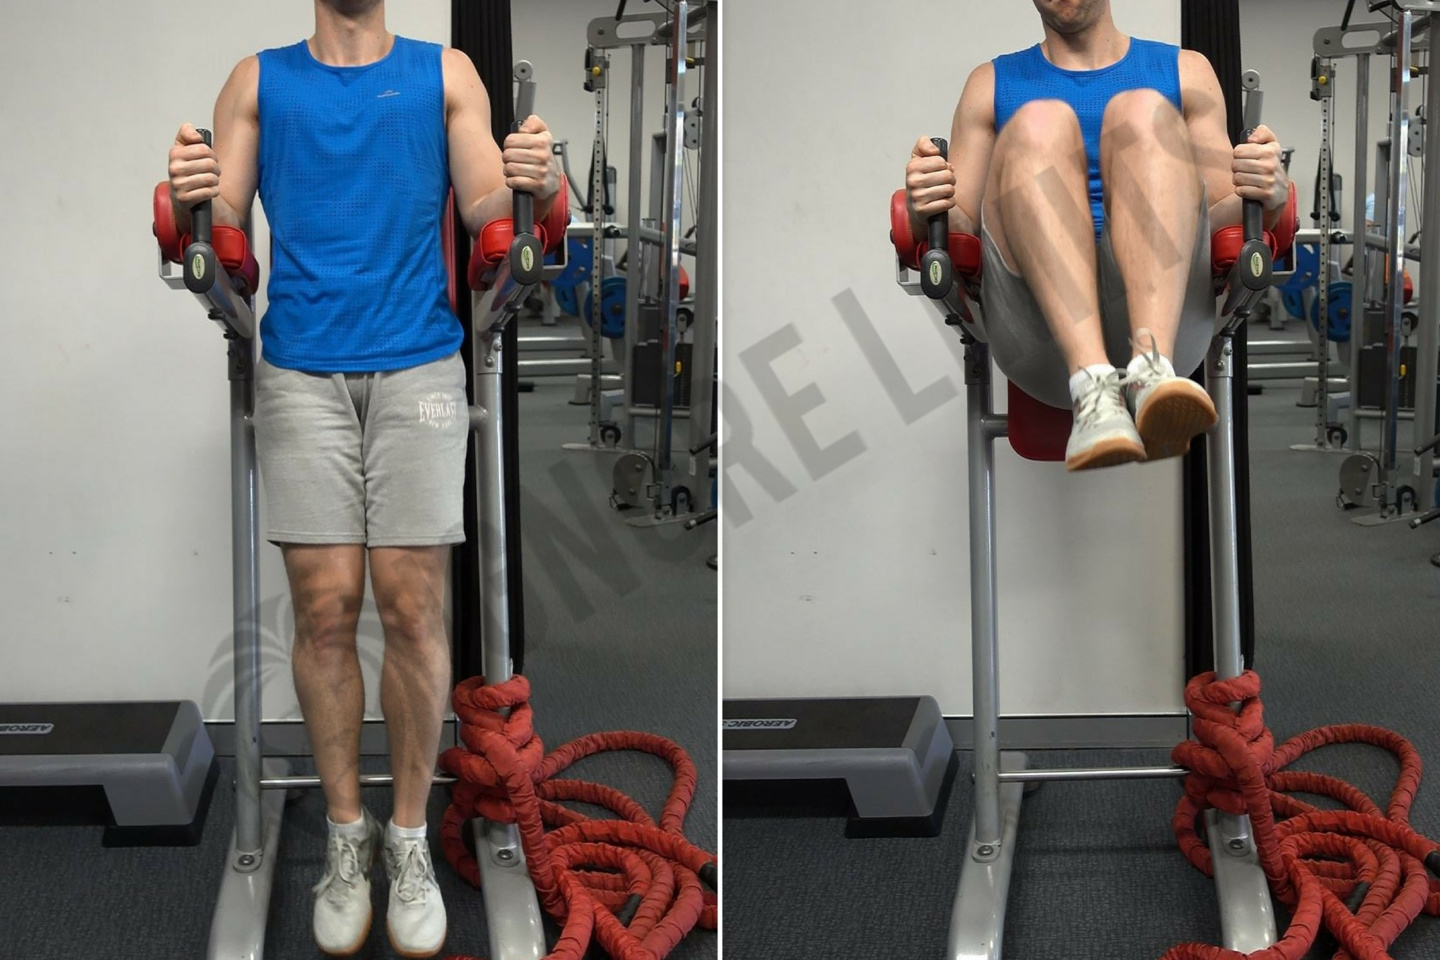 How To: Captains Chair Leg Raise - Ignore Limits